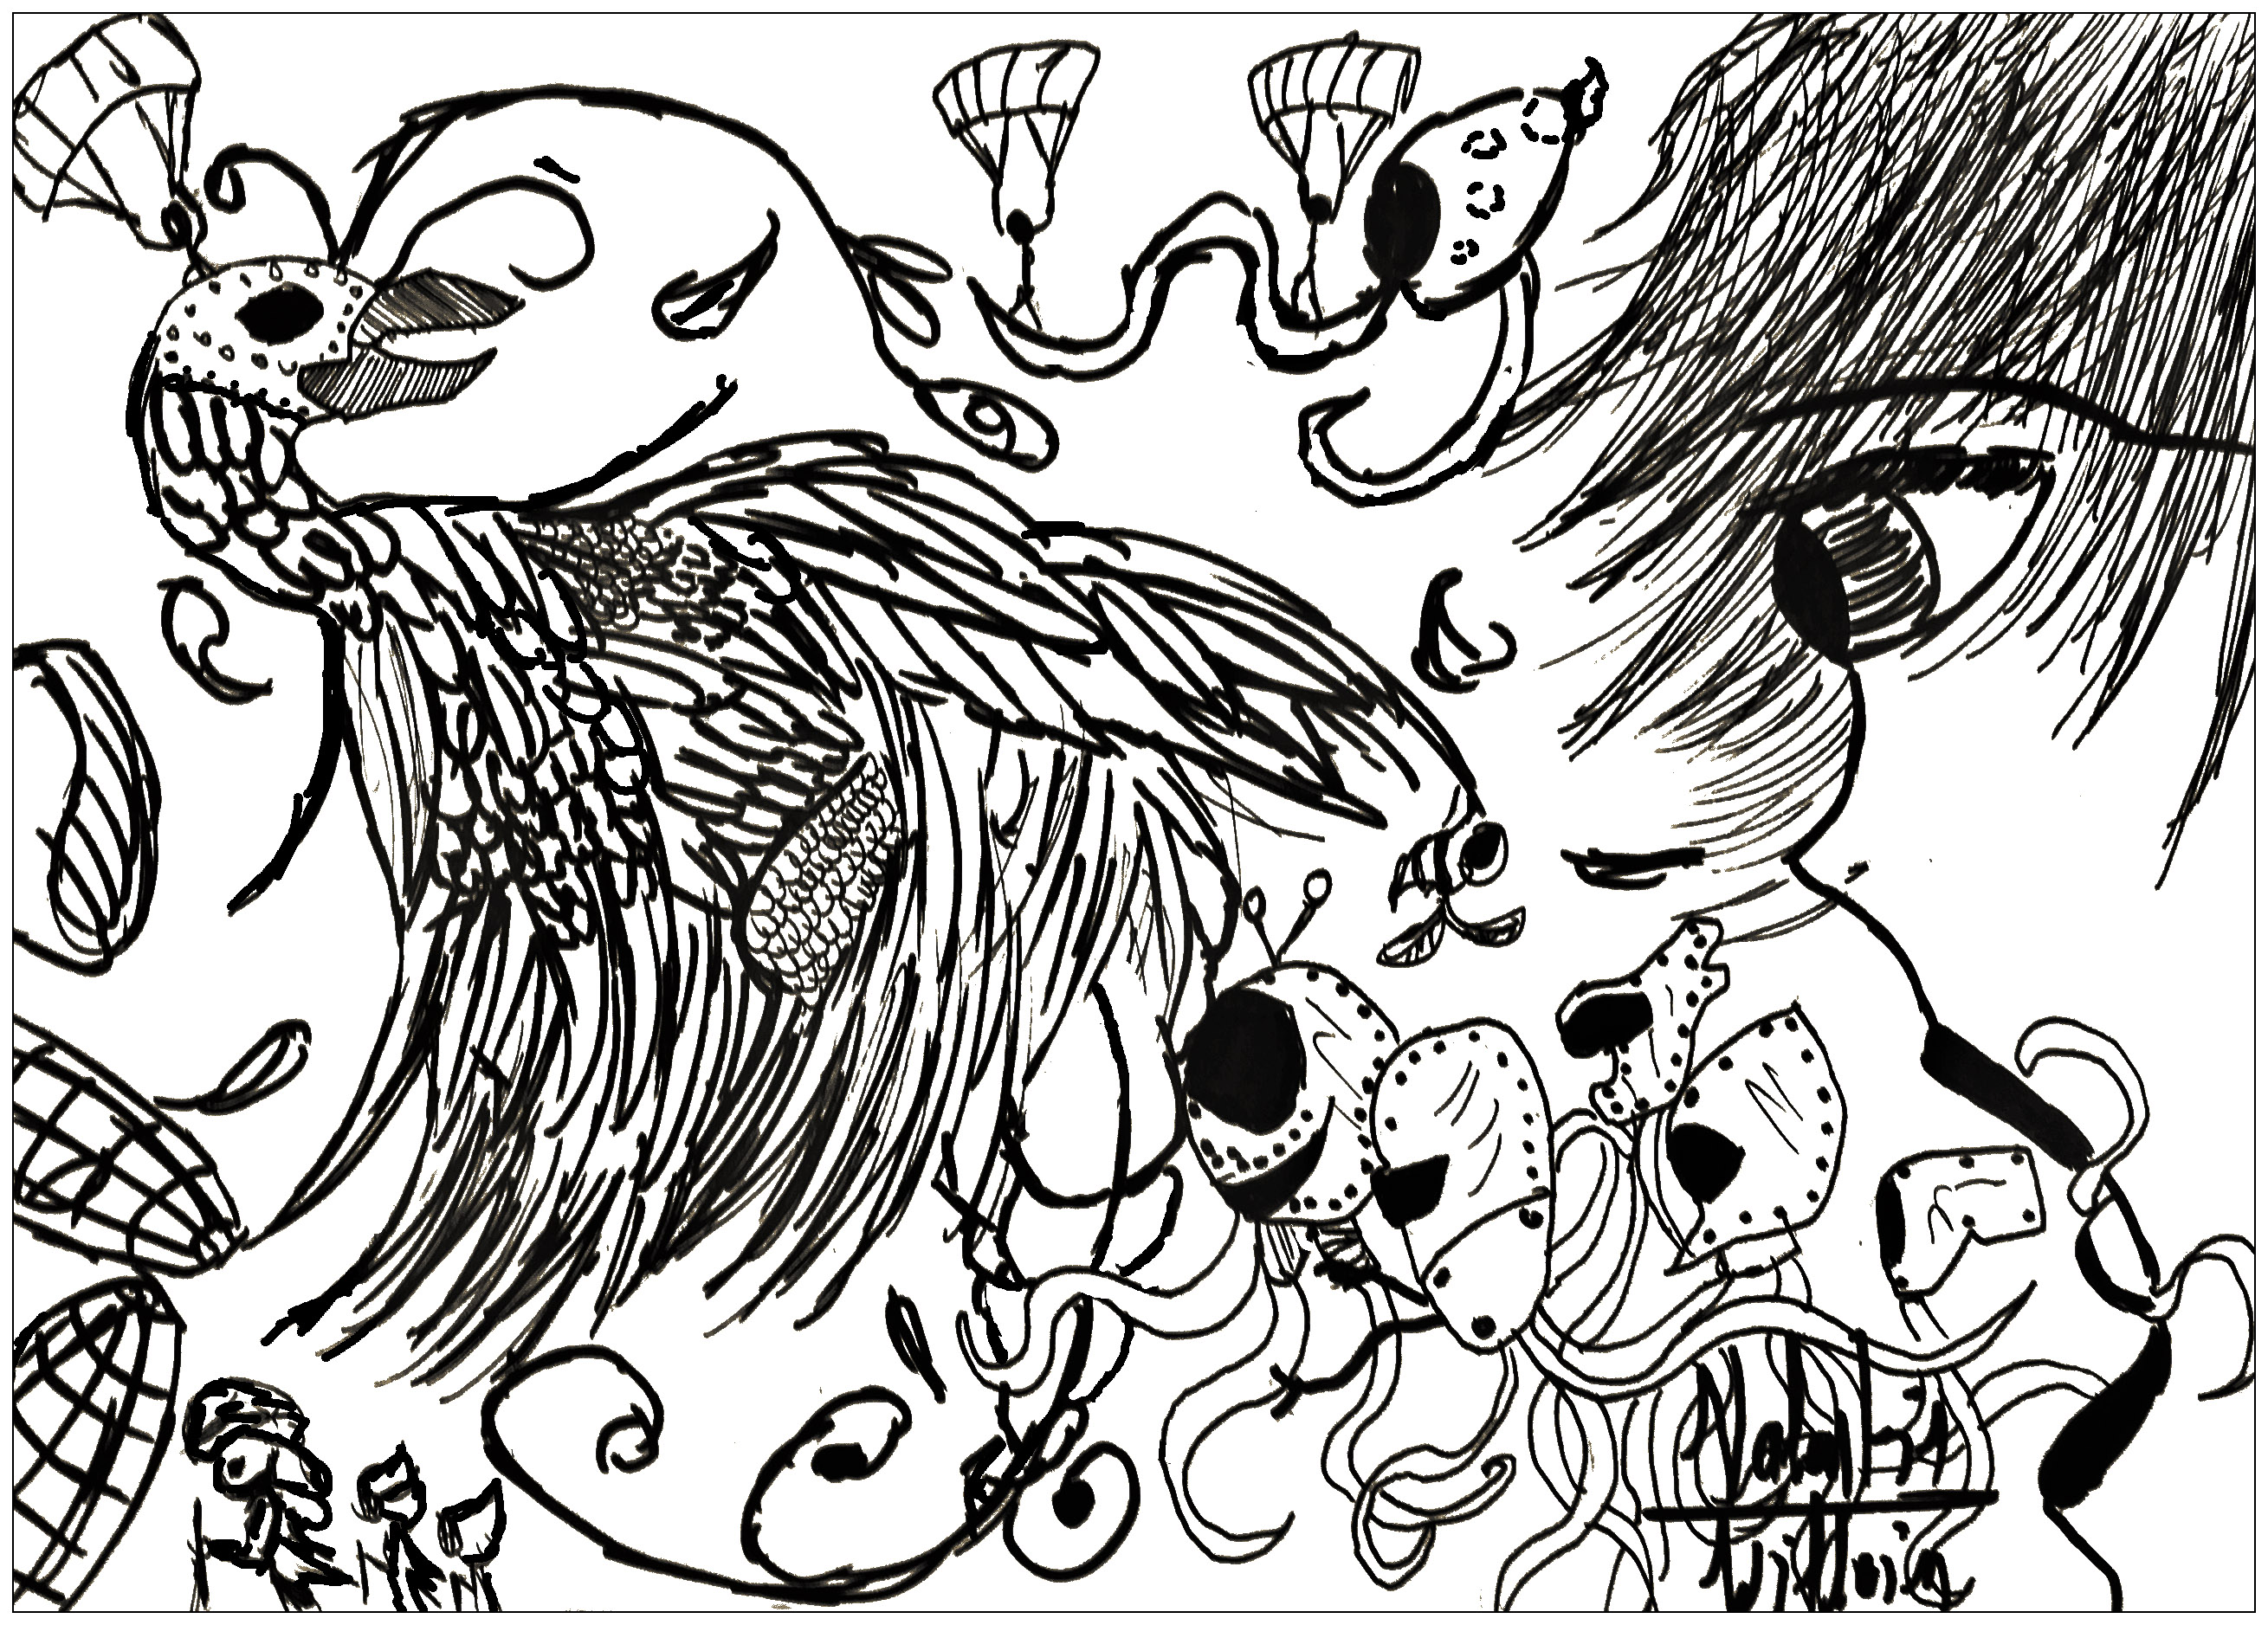 Coloring pages artist - Here Is A Doodling Very Crazy By Valentin From The Gallery Doodling